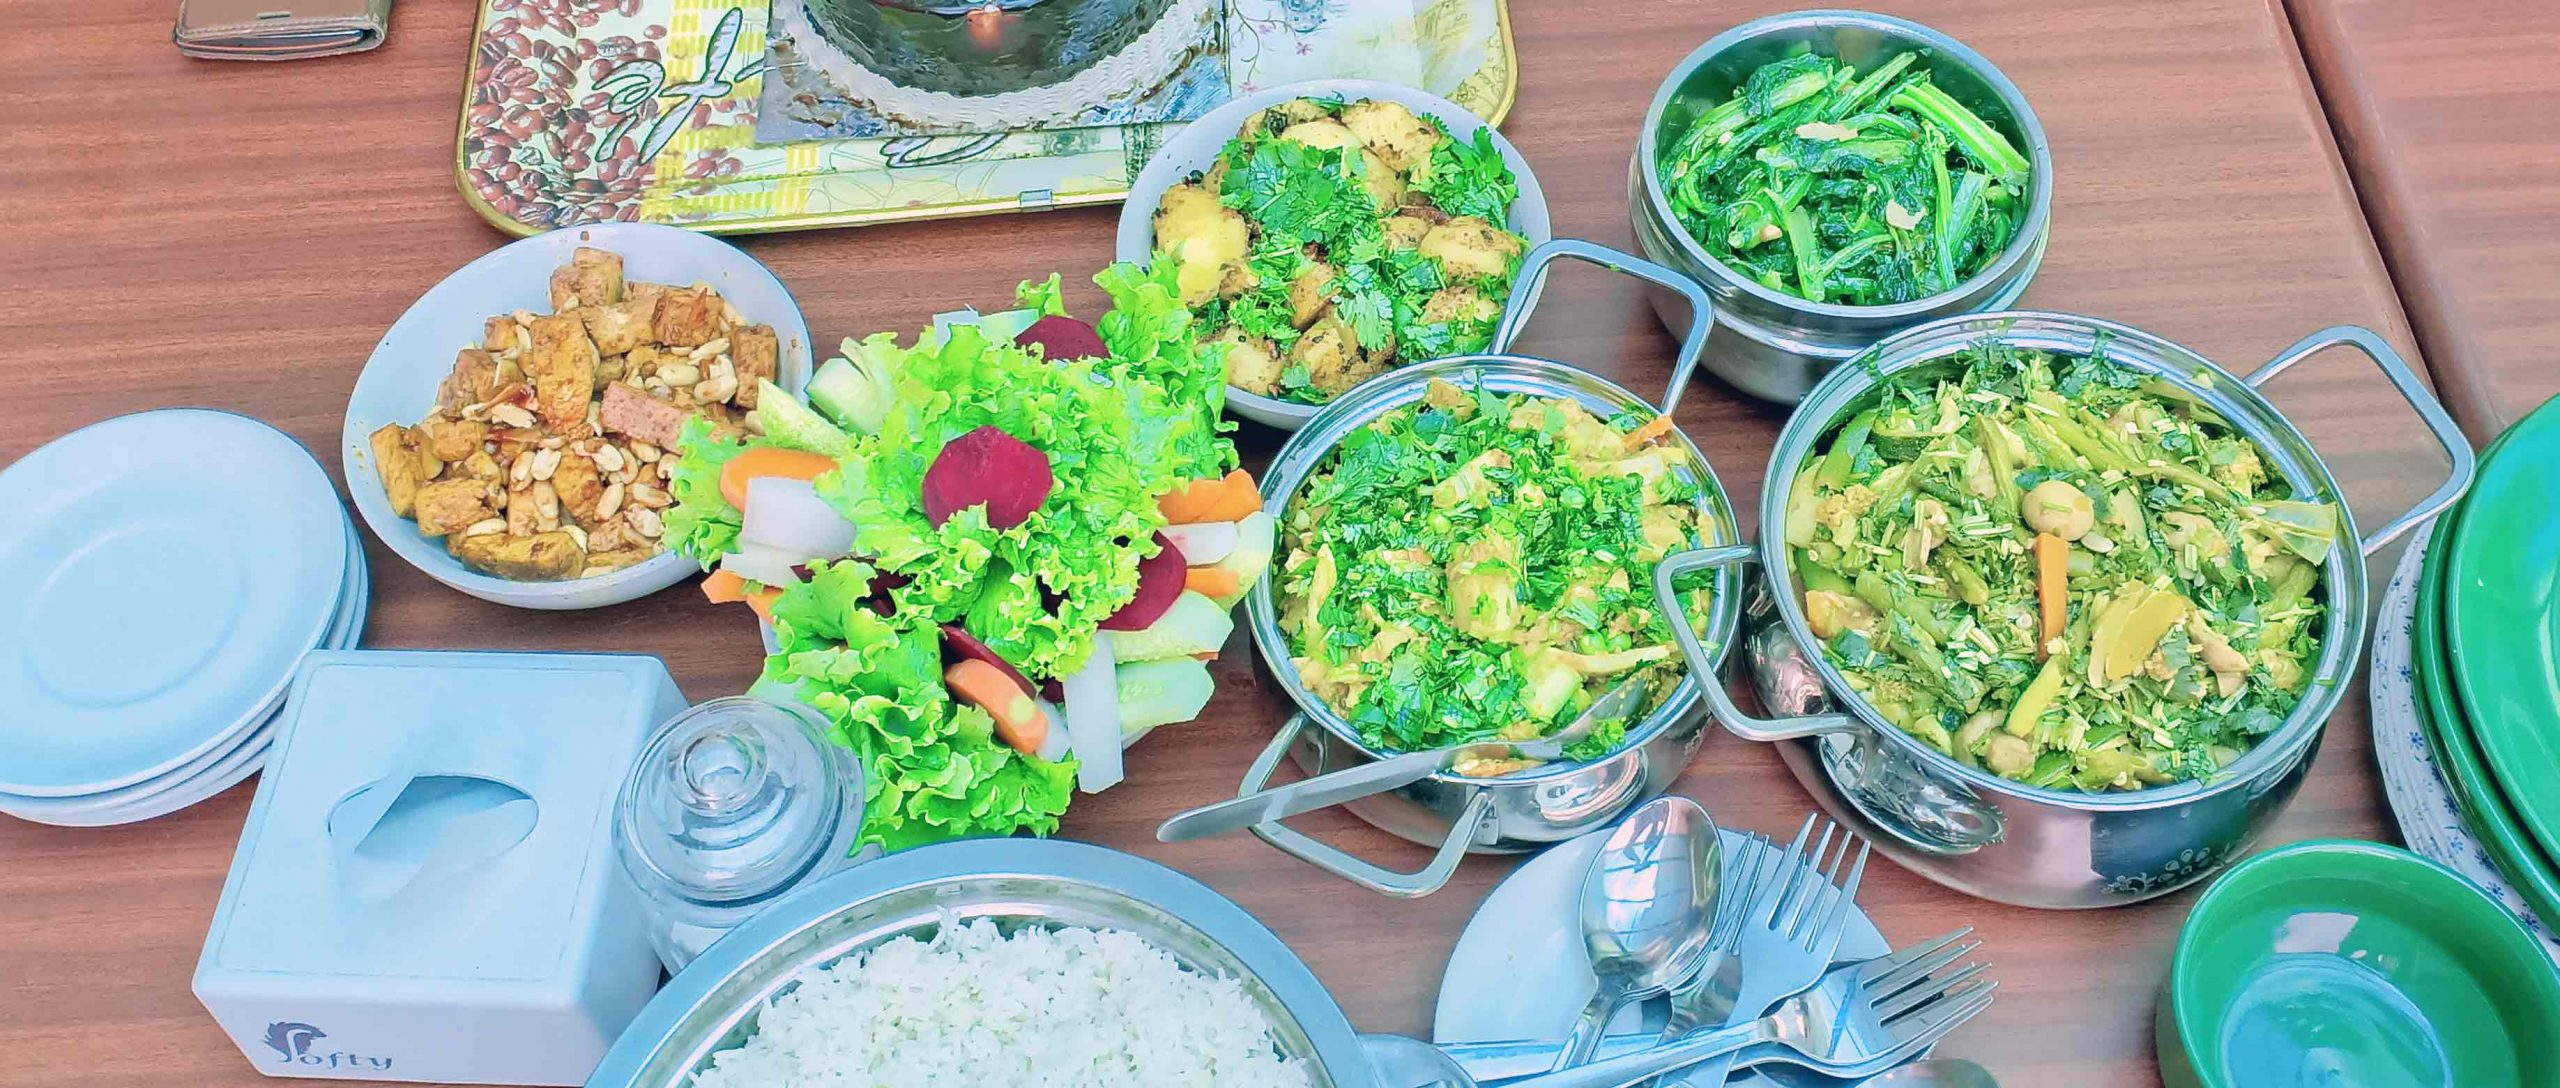 Diet for Health in Yoga & Ayurveda